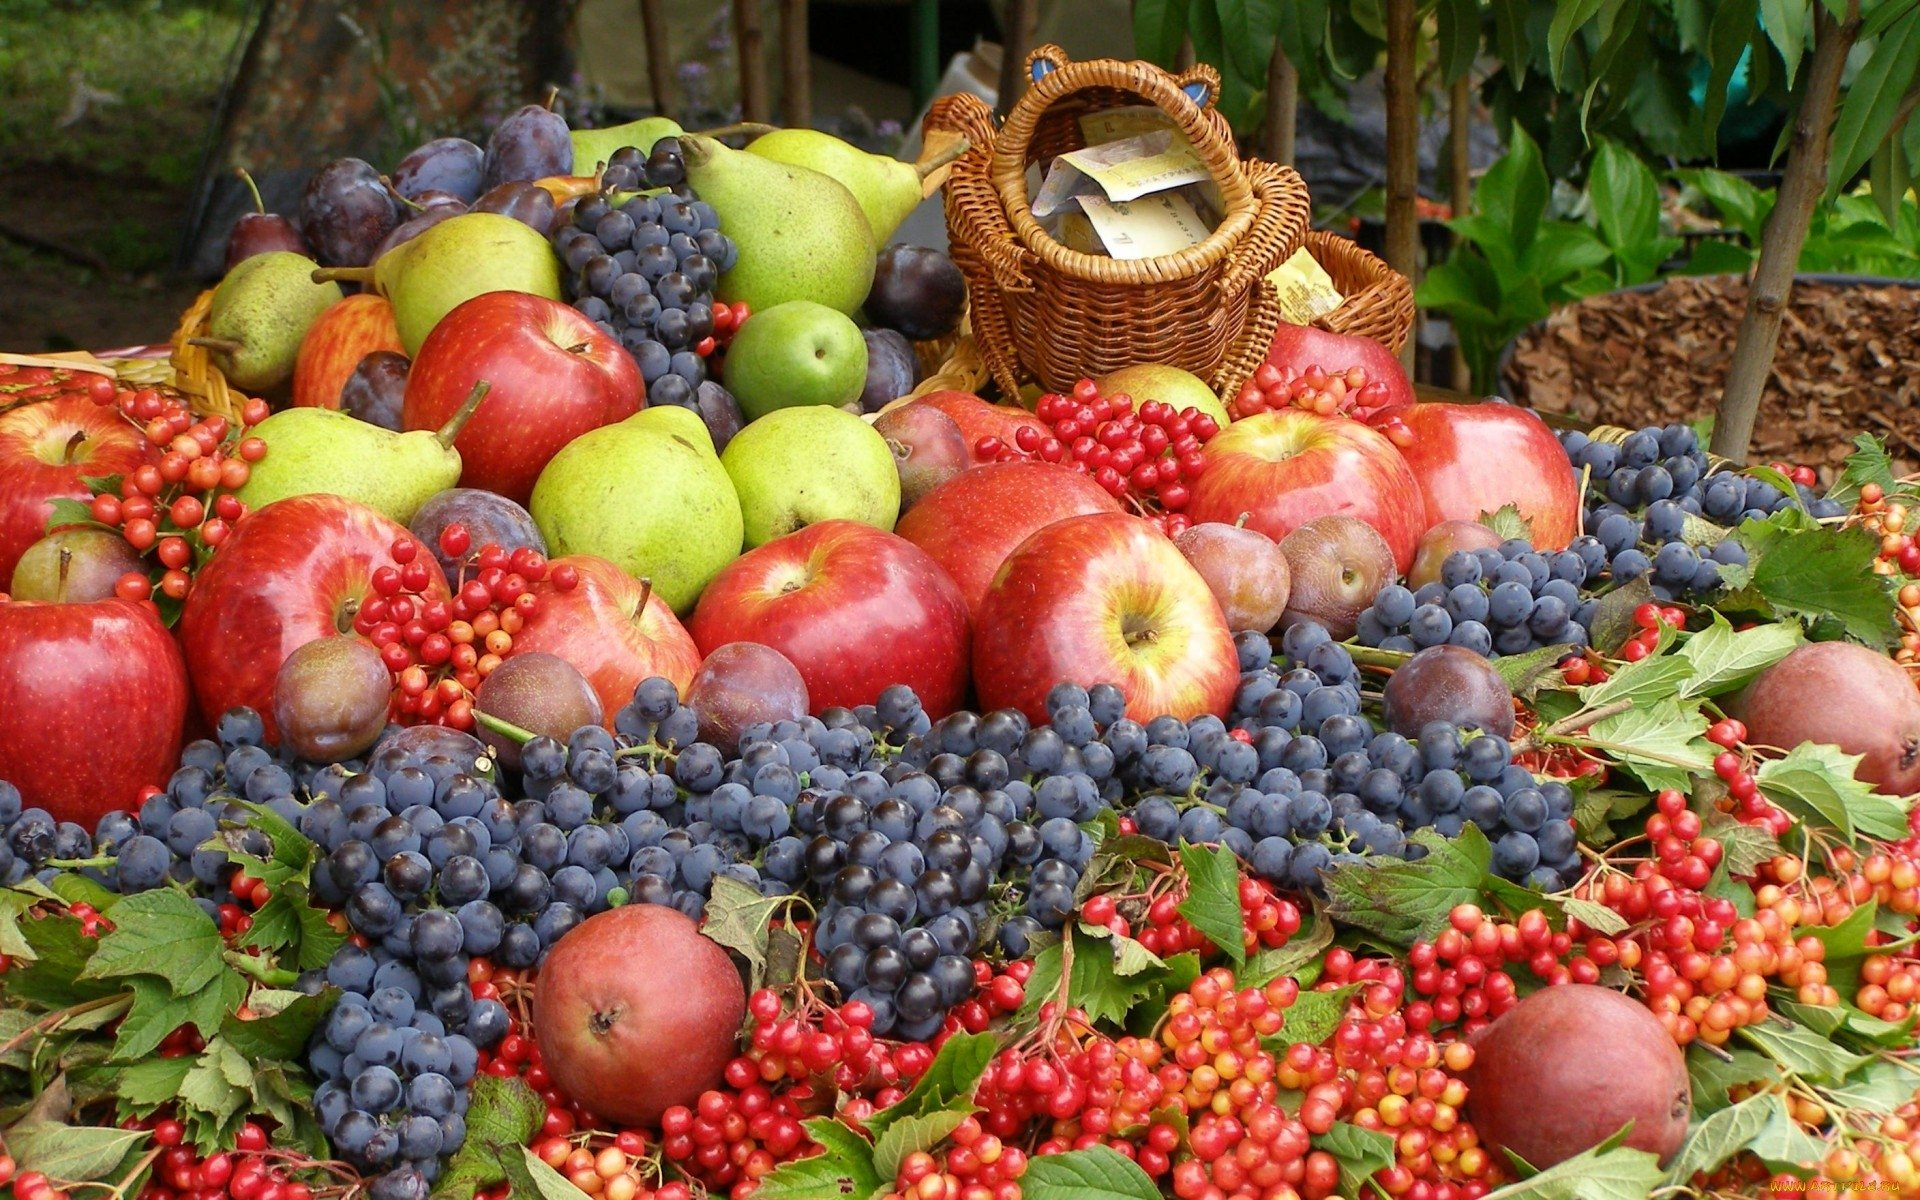 All the fruits wallpaper - Hd Wallpaper Background Id 326822